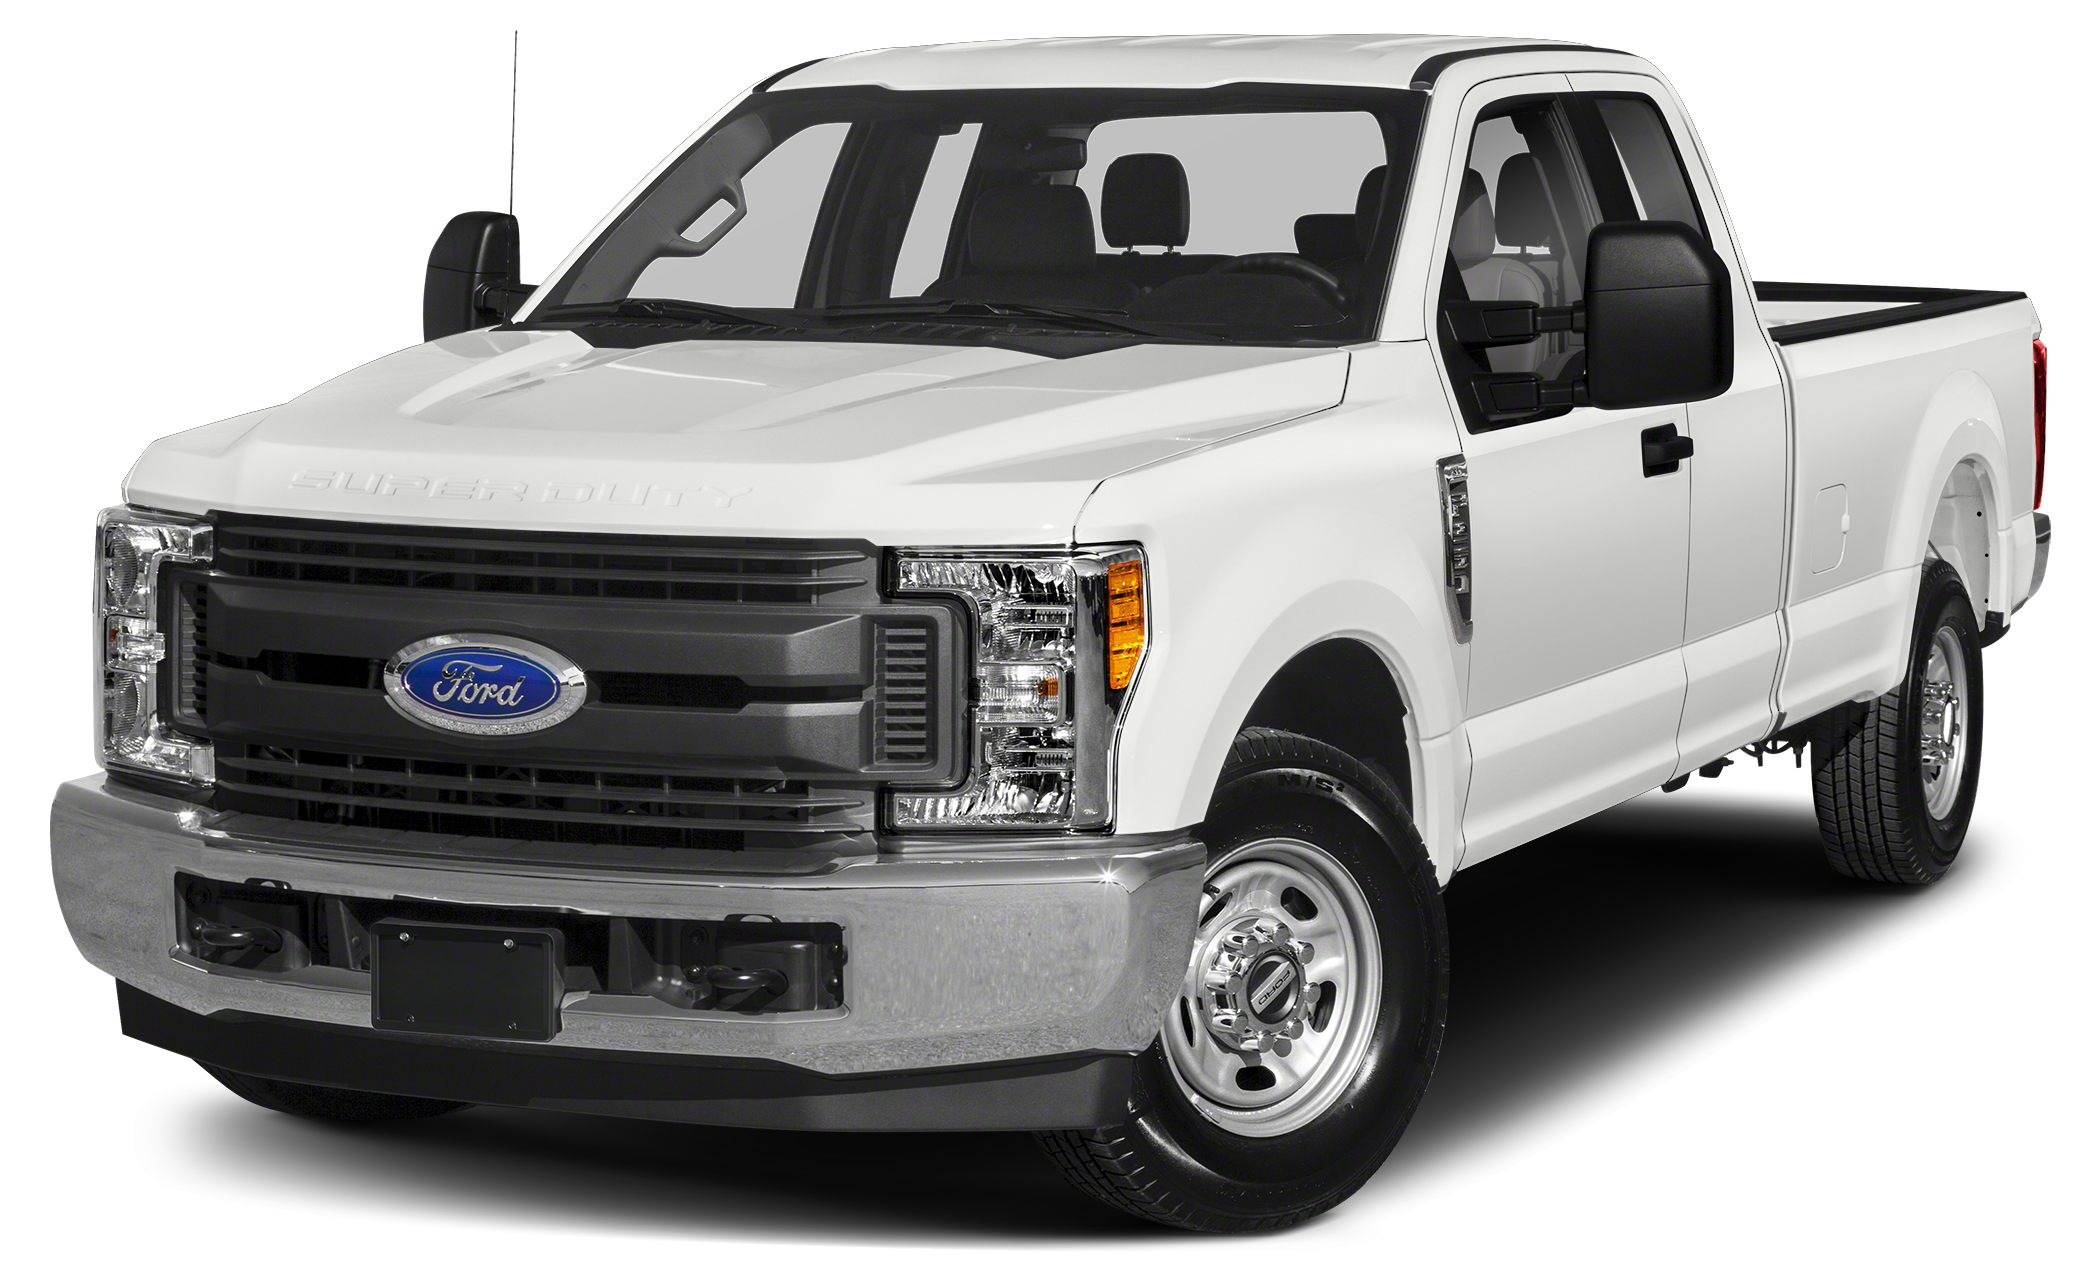 2017 Ford F-250 Super Duty Price includes 750 - F-Super Duty Retail Customer Cash Exp 100220